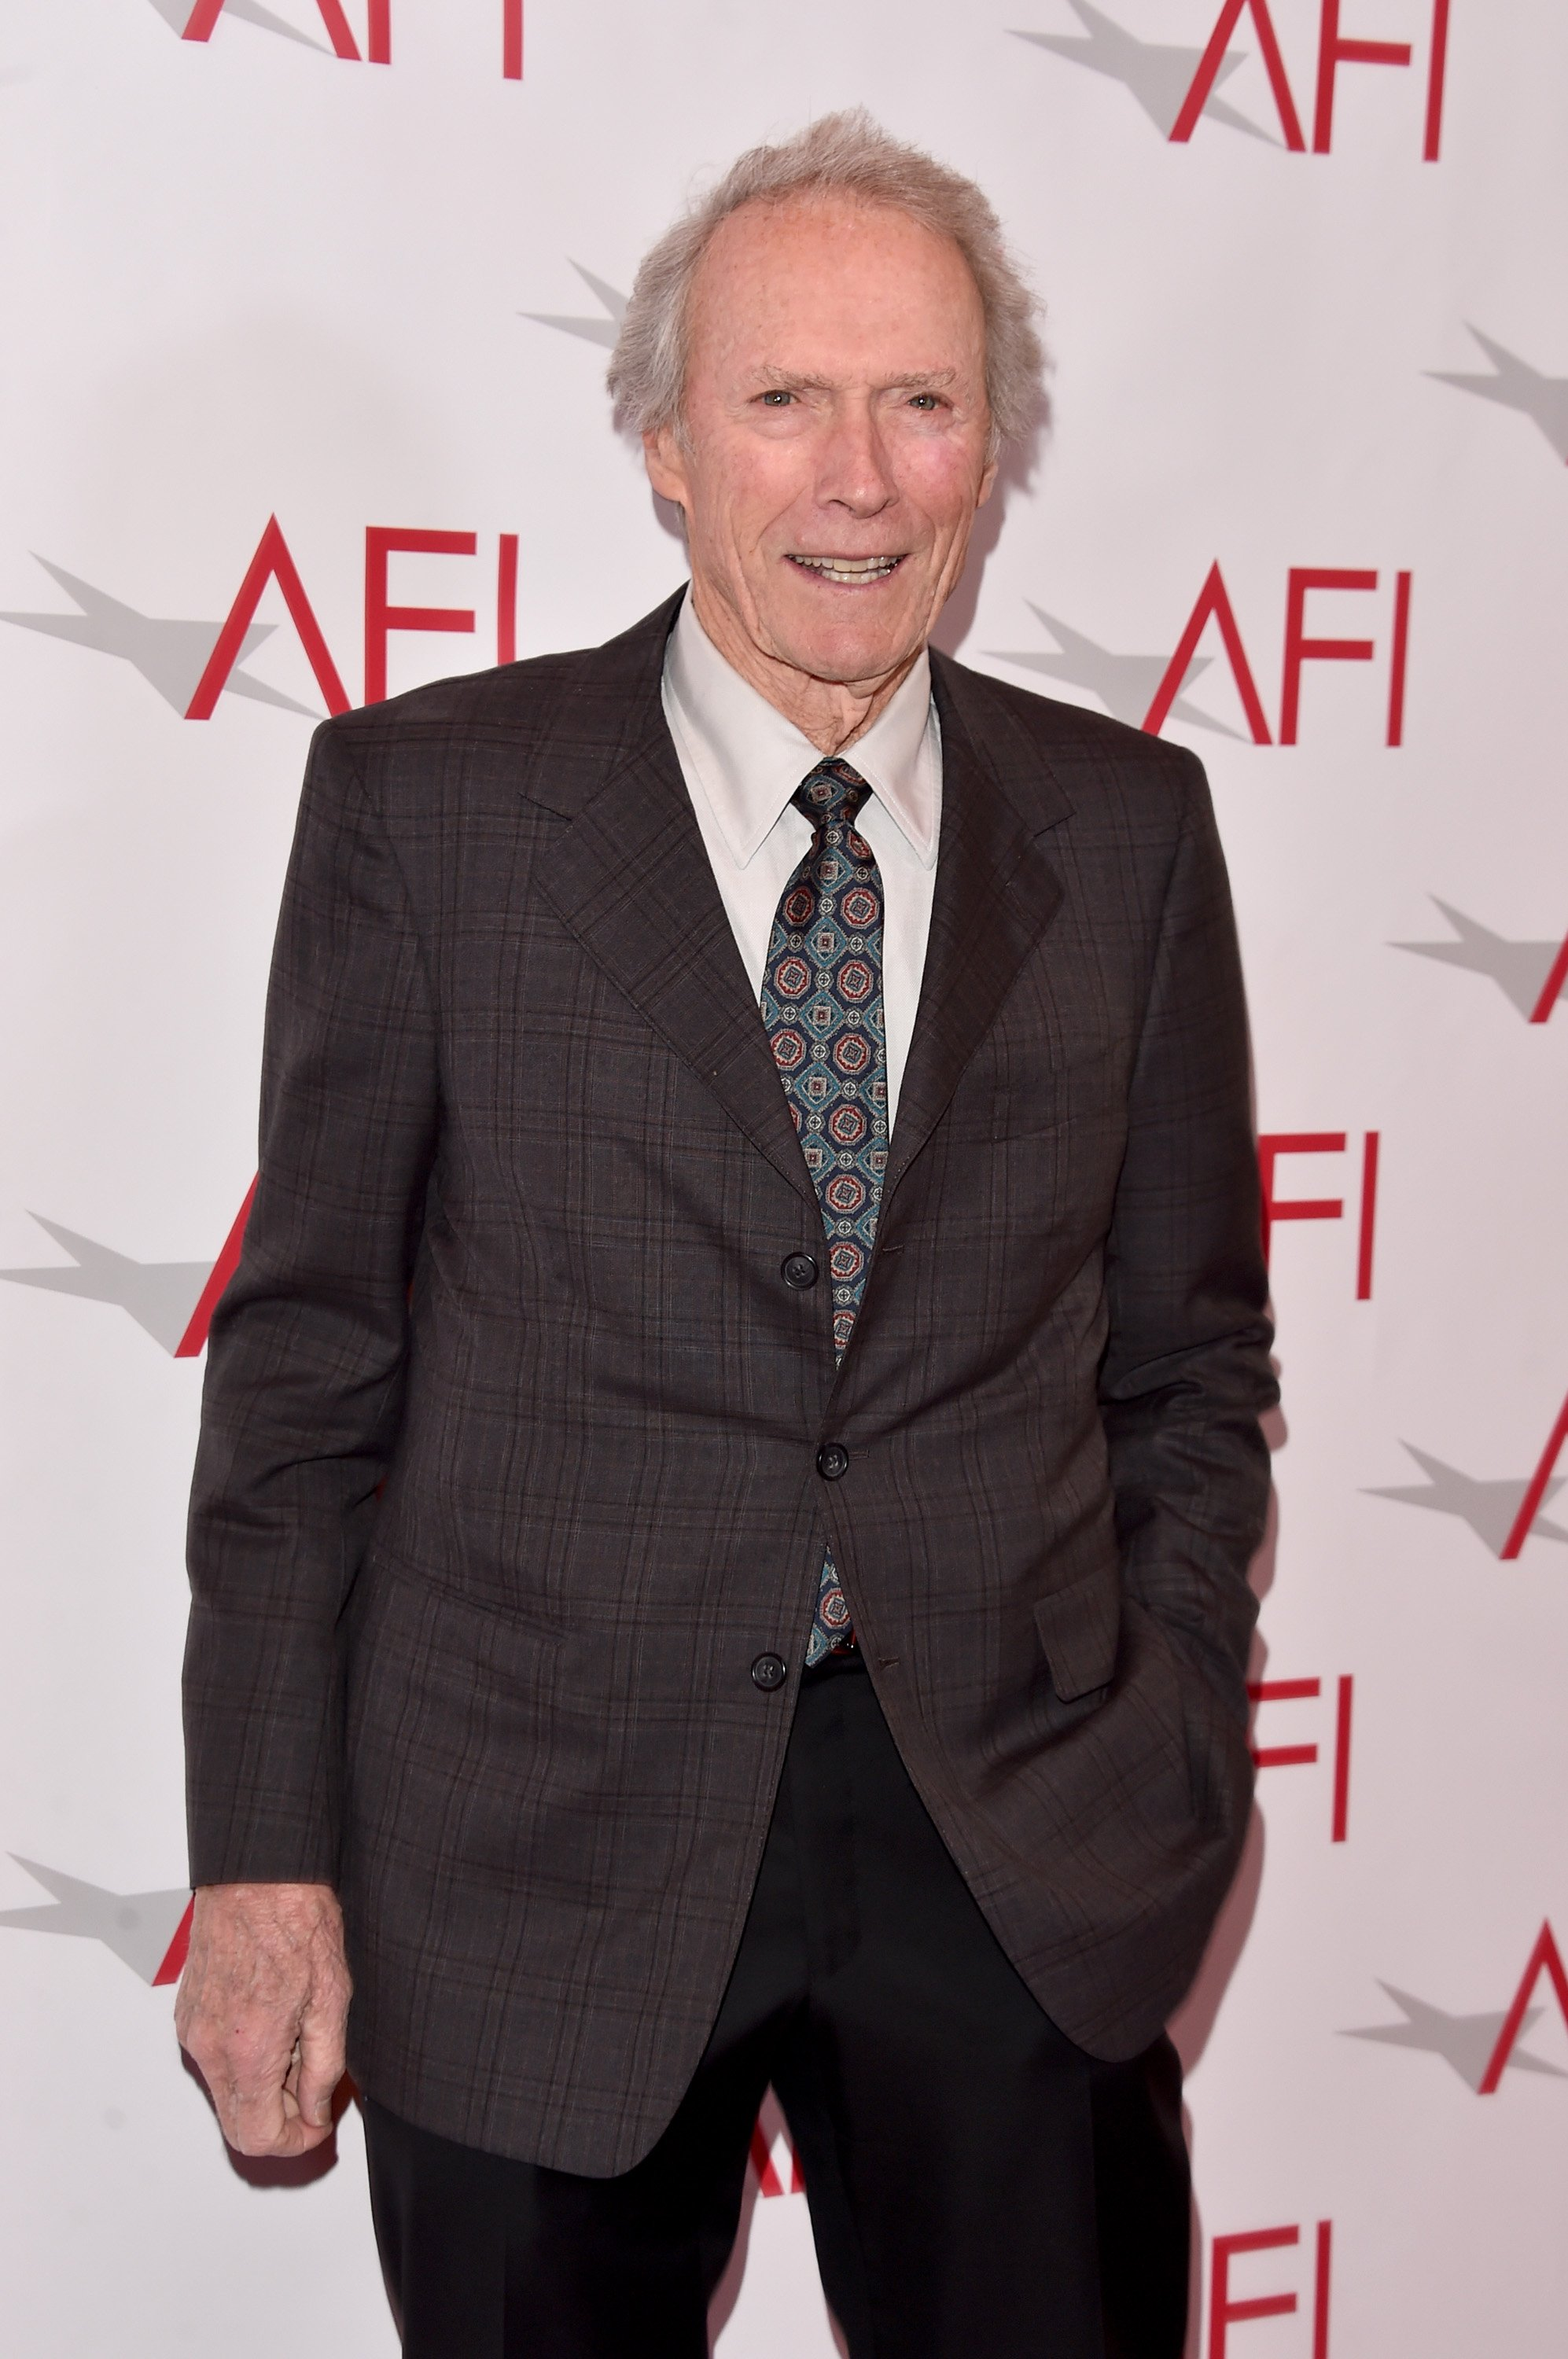 Clint Eastwood at the 17th annual AFI Awards on January 6, 2017 | Photo: GettyImages